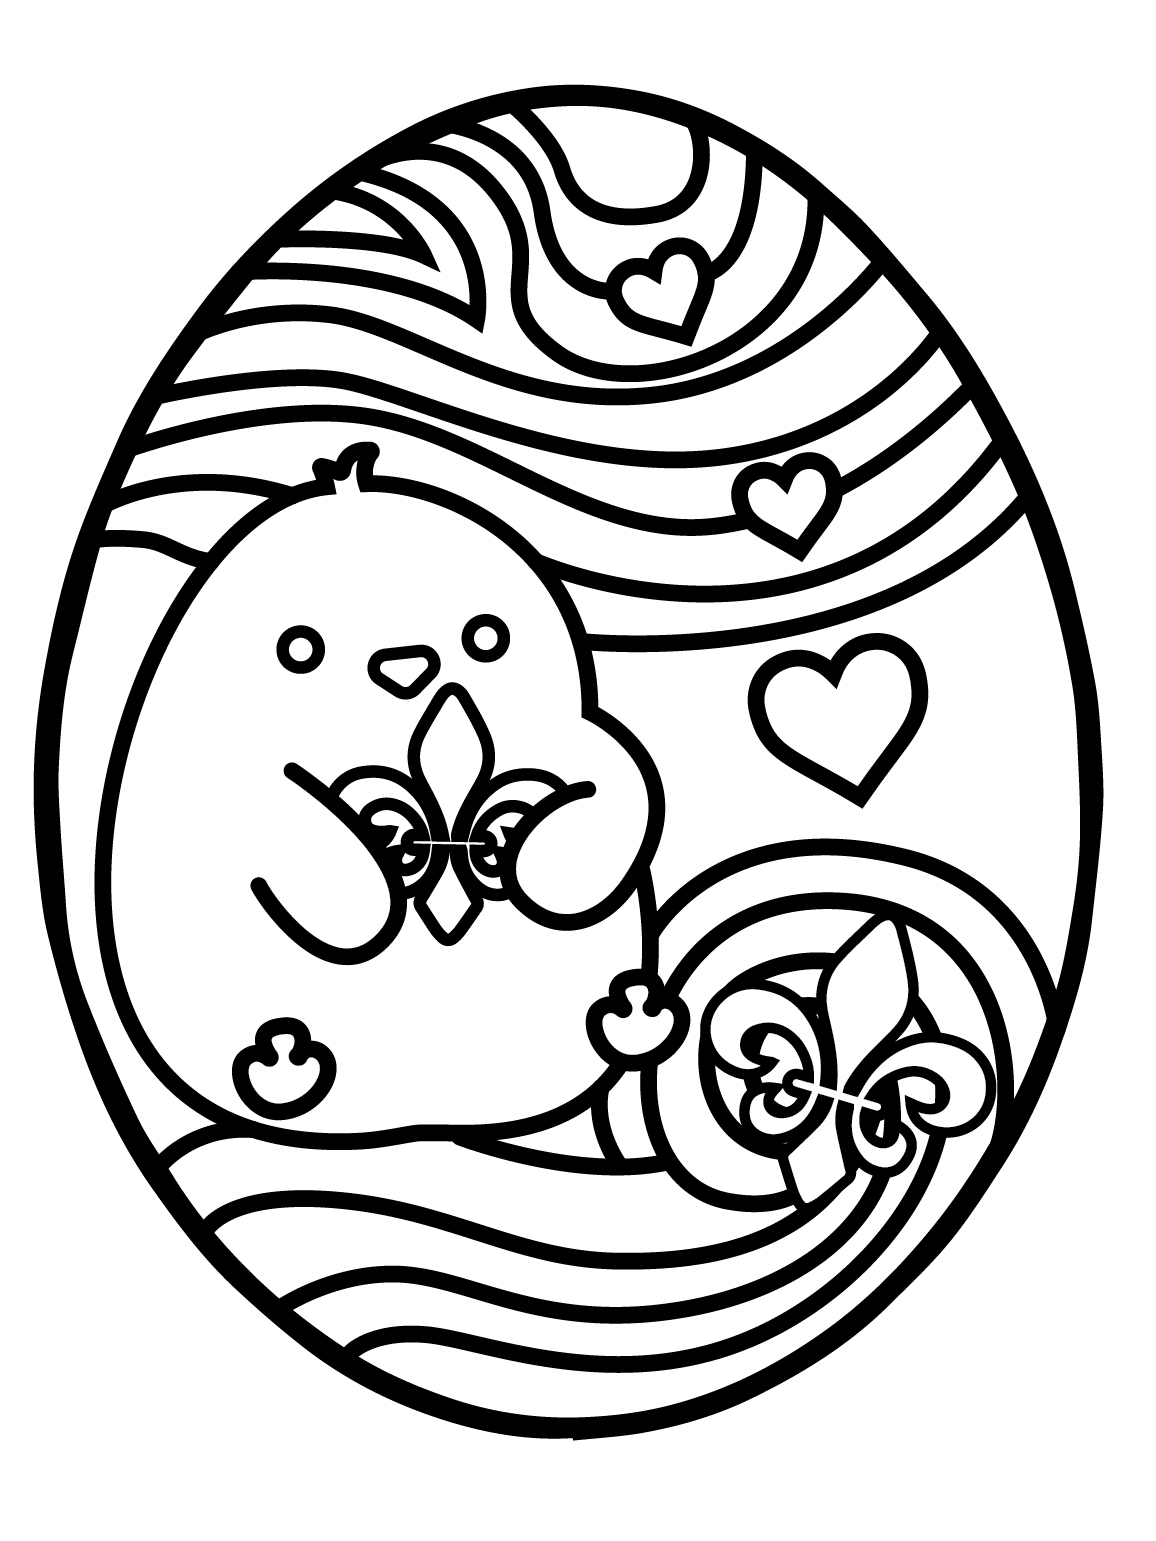 printable easter egg coloring pages printable easter bunny egg coloring pages kids coloring printable pages egg easter coloring